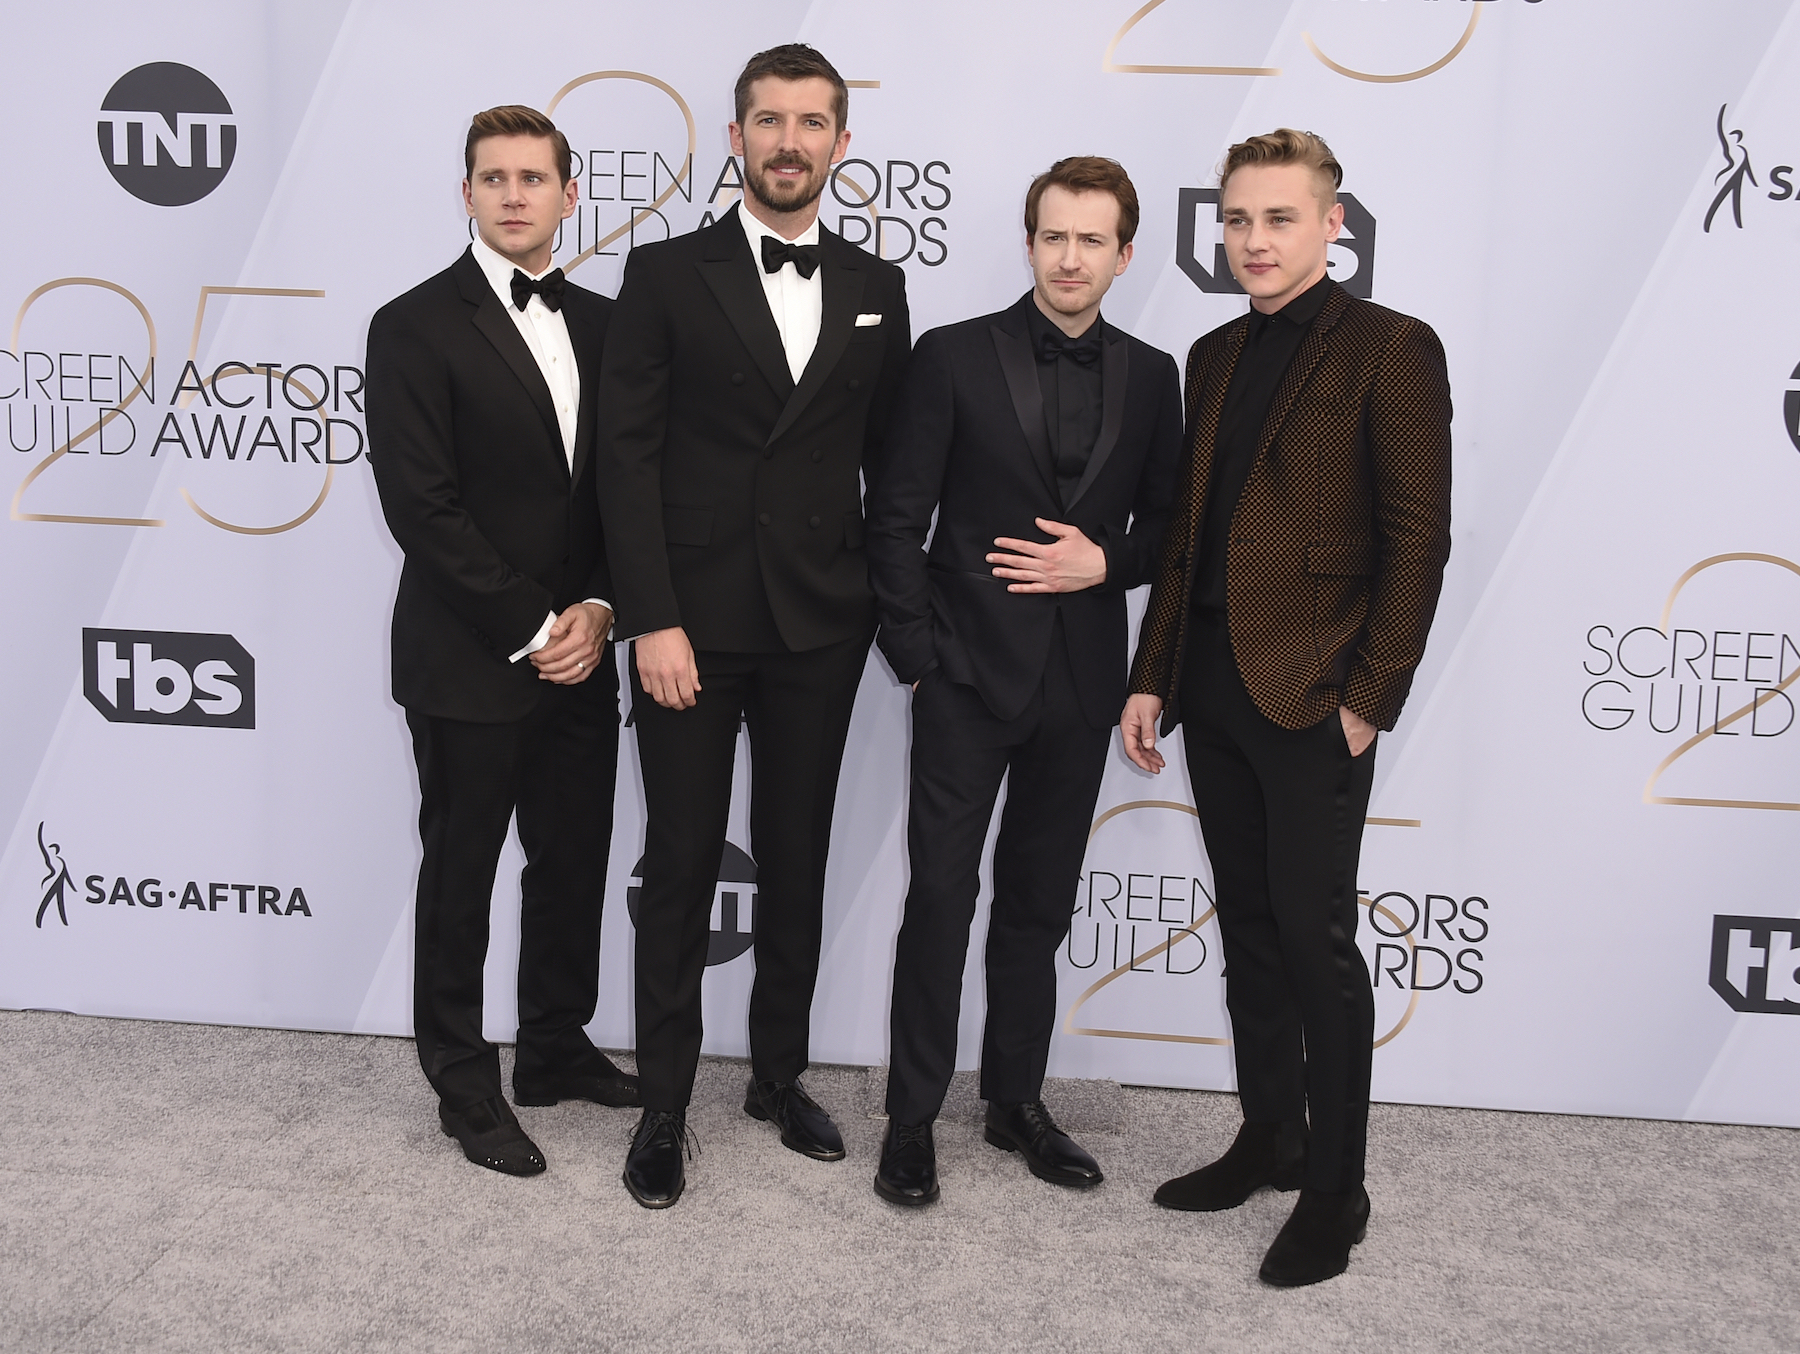 "<div class=""meta image-caption""><div class=""origin-logo origin-image ap""><span>AP</span></div><span class=""caption-text"">Allen Leech, from left, Gwilym Lee, Joseph Mazzello, and Ben Hardy arrive at the 25th annual Screen Actors Guild Awards at the Shrine Auditorium & Expo Hall. (Jordan Strauss/Invision/AP)</span></div>"